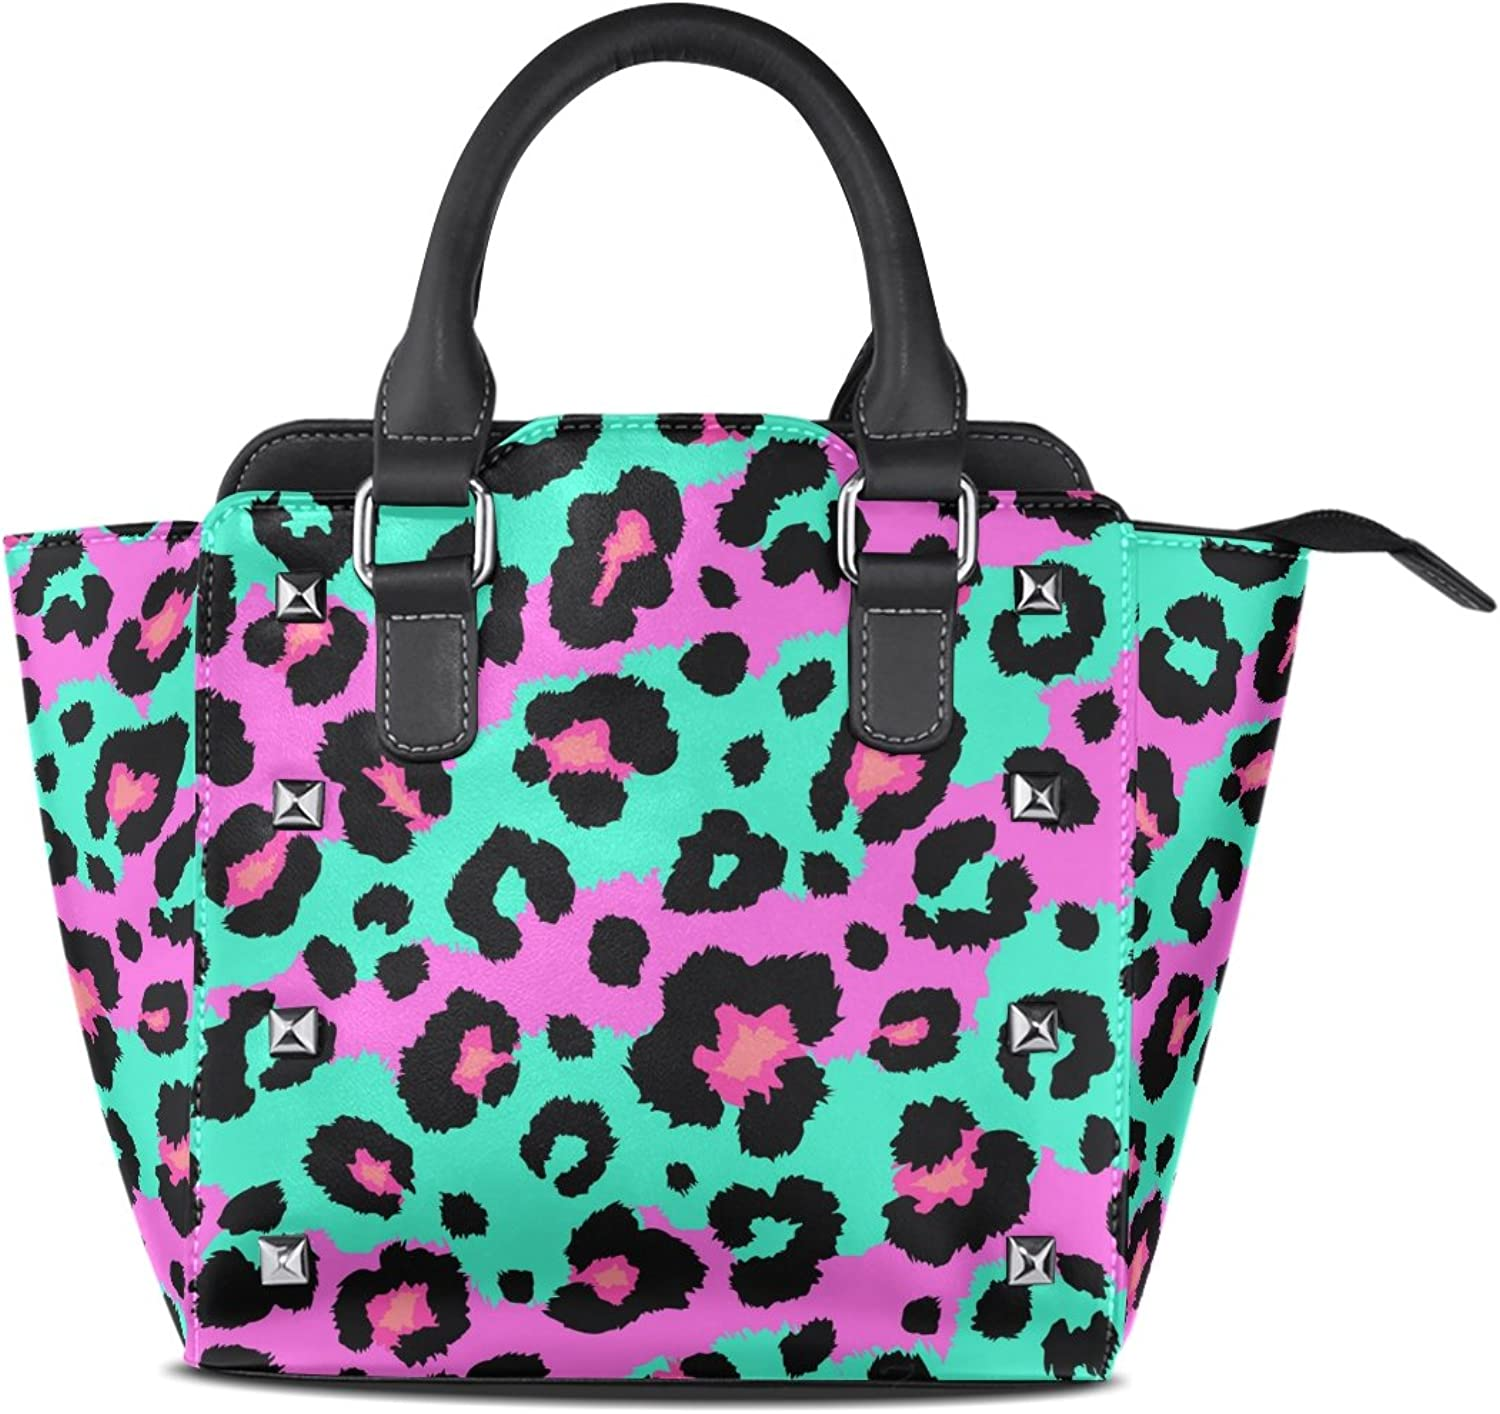 My Little Nest Women's Top Handle Satchel Handbag colorful Leopard Pattern Ladies PU Leather Shoulder Bag Crossbody Bag